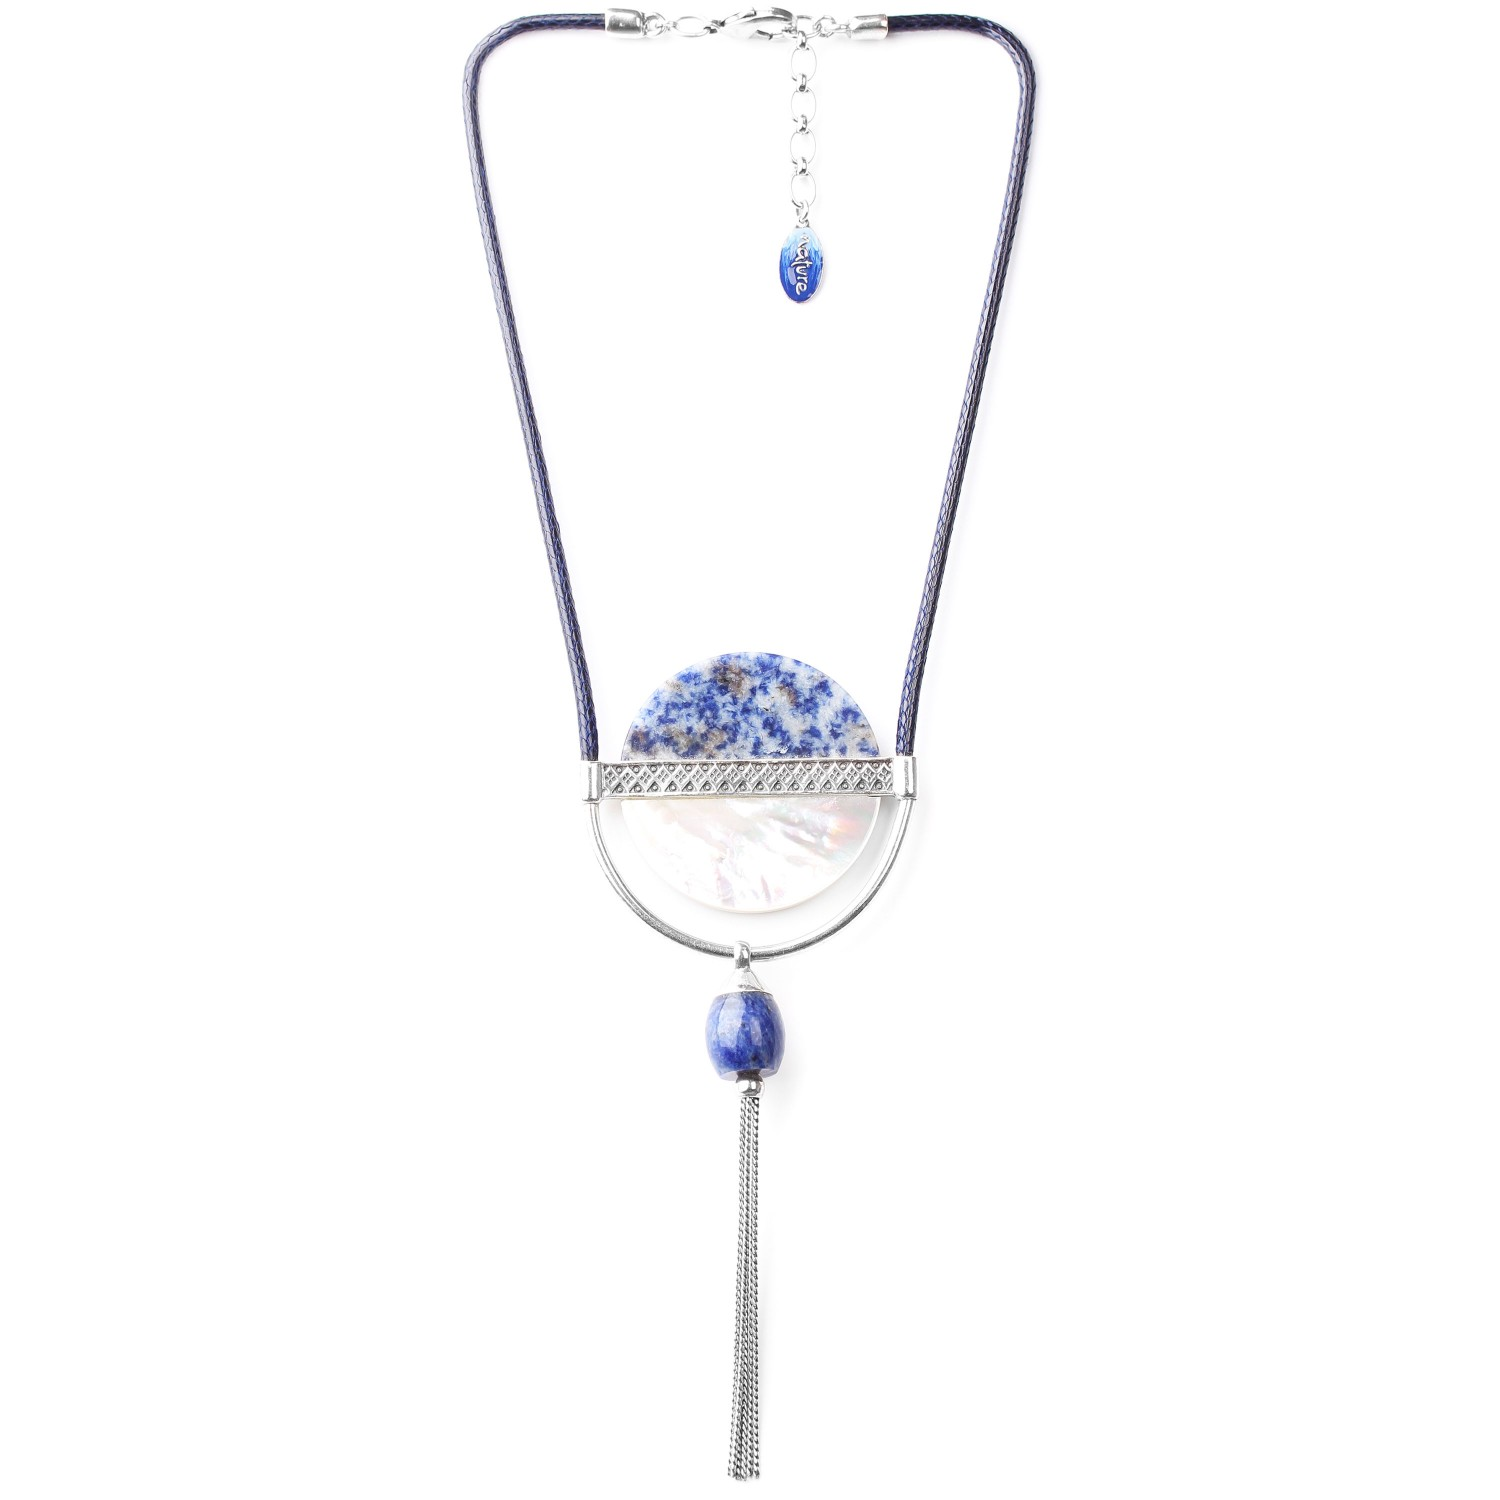 CYCLADES disc & tassel necklace